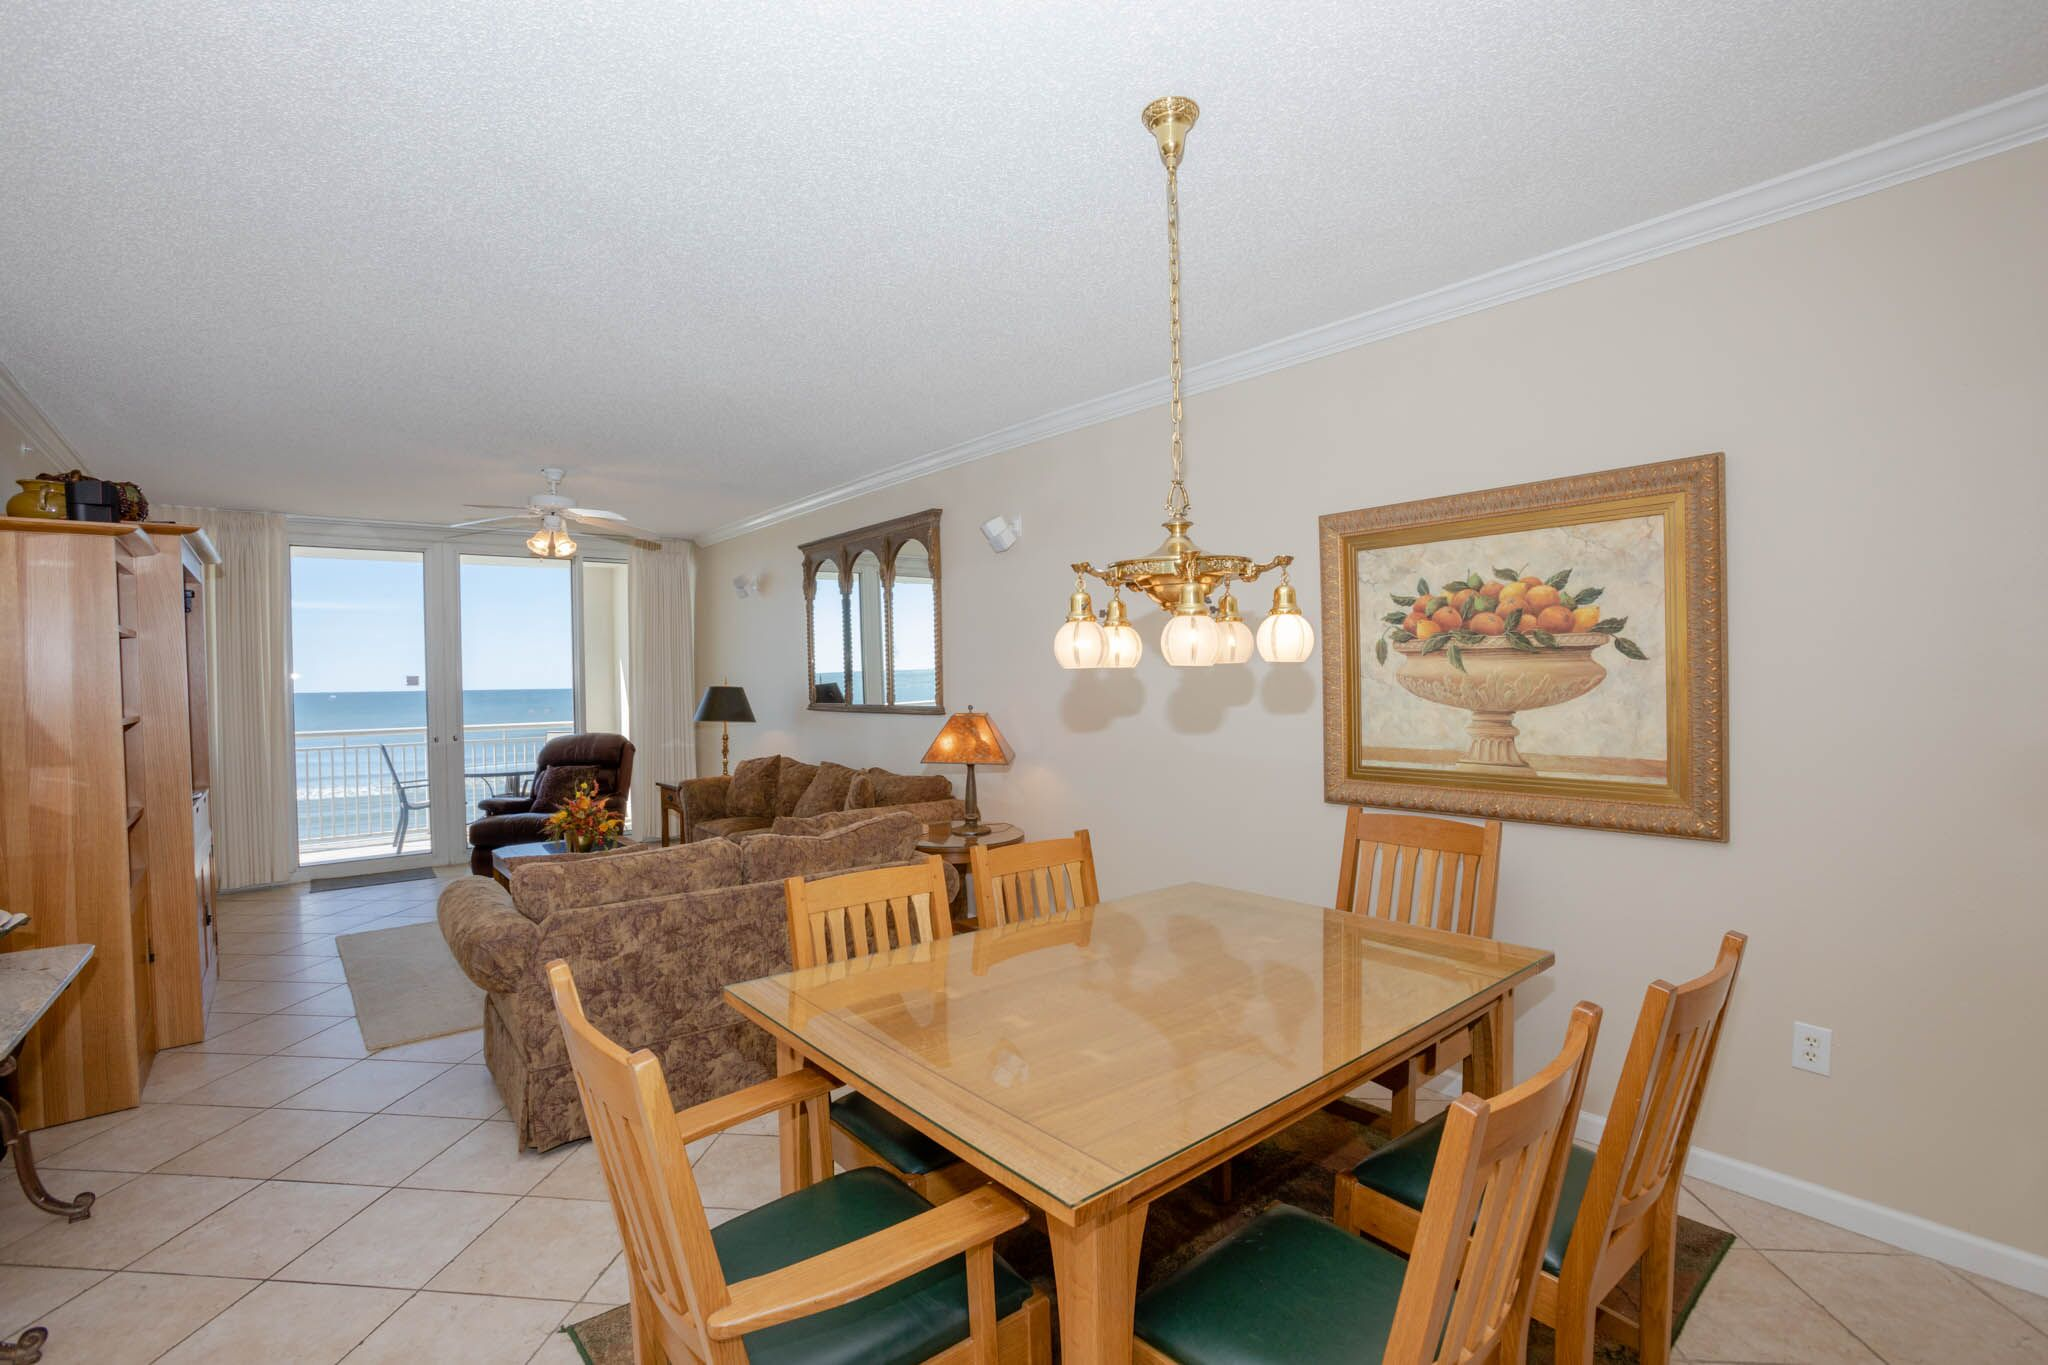 The Pearl of Navarre #504 Condo rental in The Pearl of Navarre Beach in Navarre Florida - #9